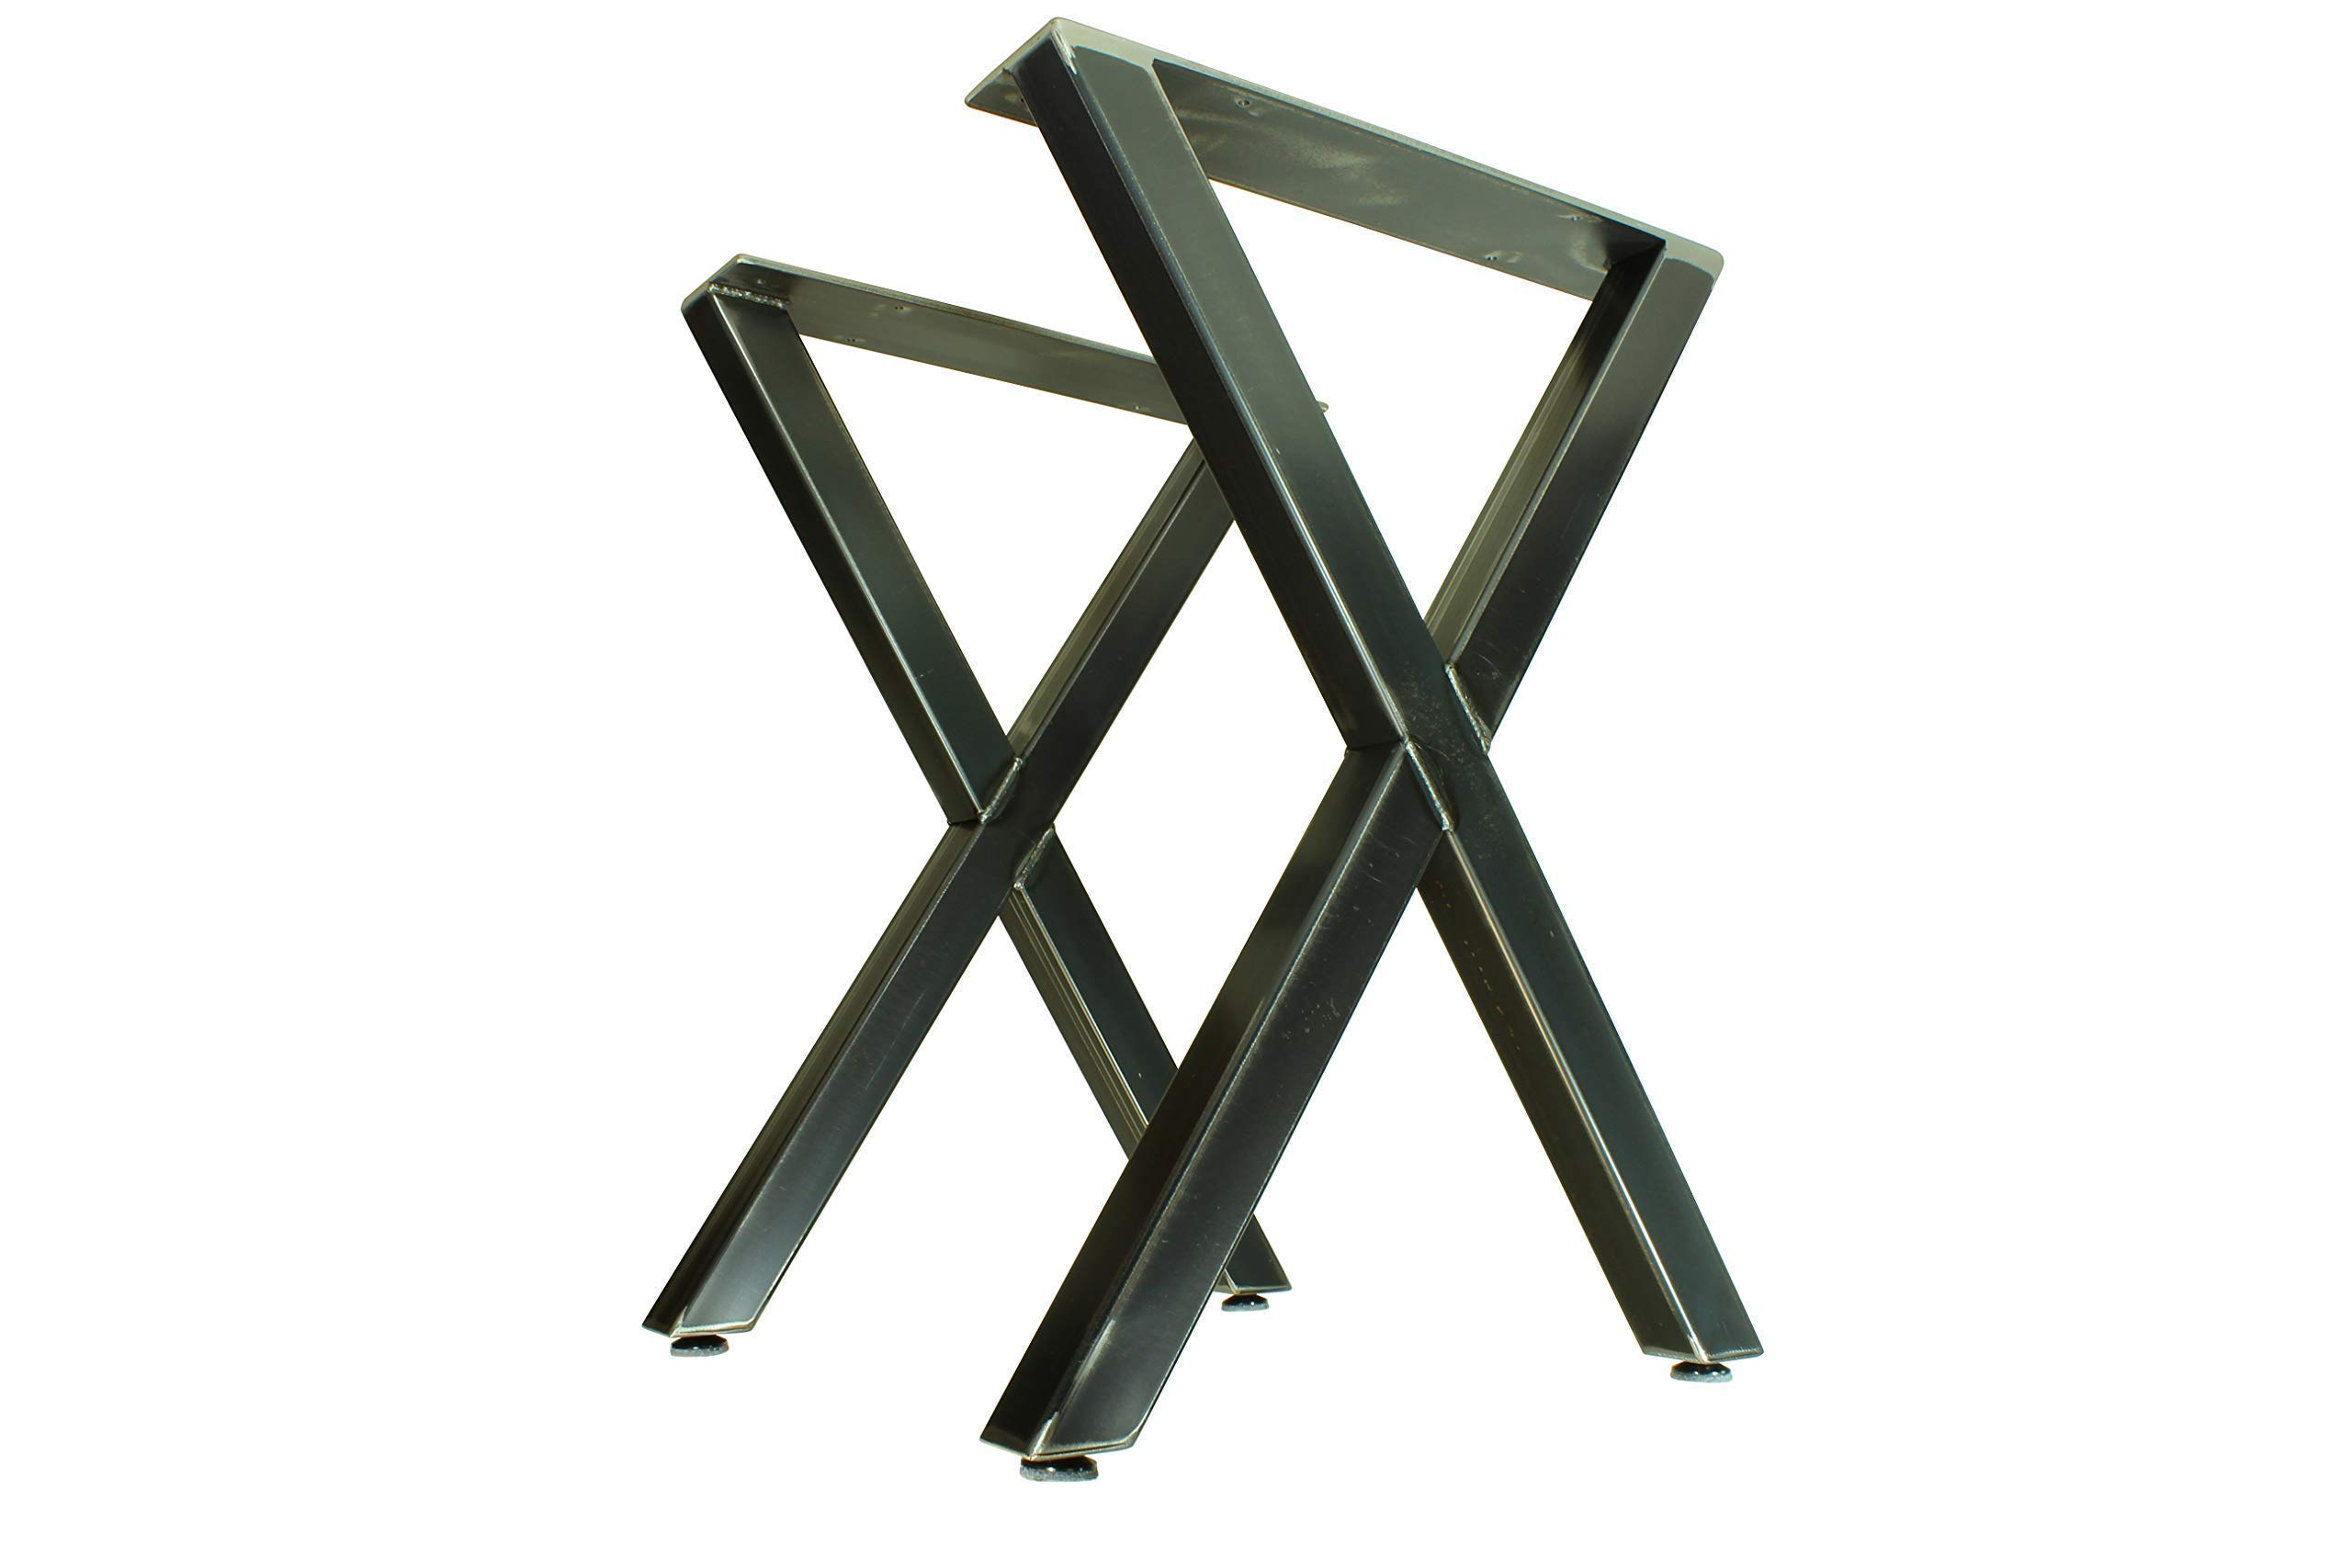 Metal Table Legs - X Style - Industrial Rustic Finish - Table Height to Bar Height